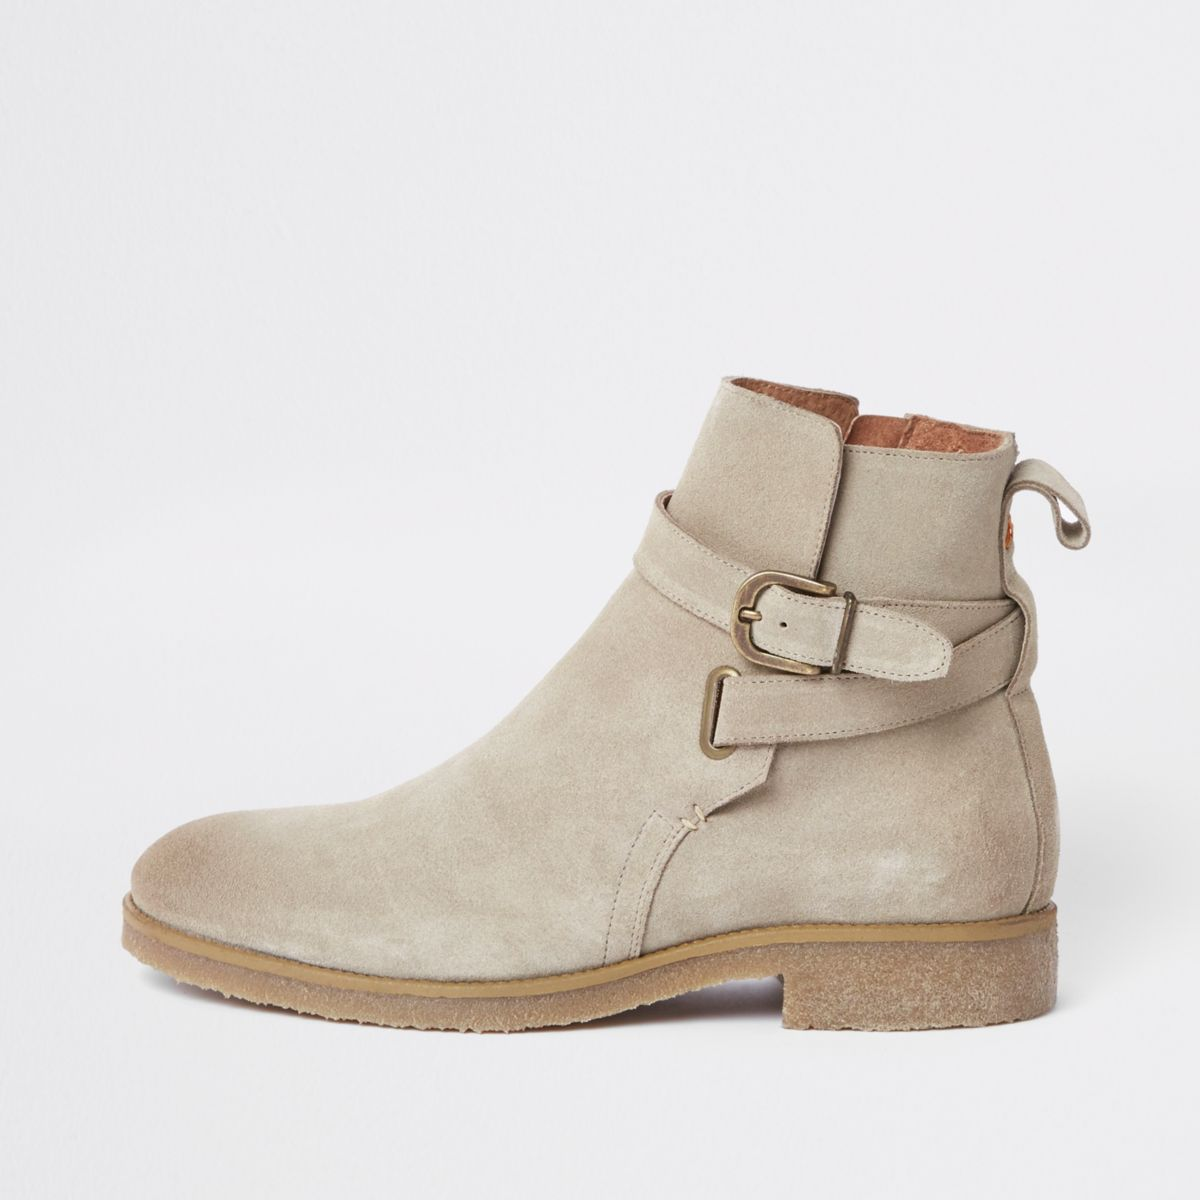 Stone suede buckle strap chelsea boots